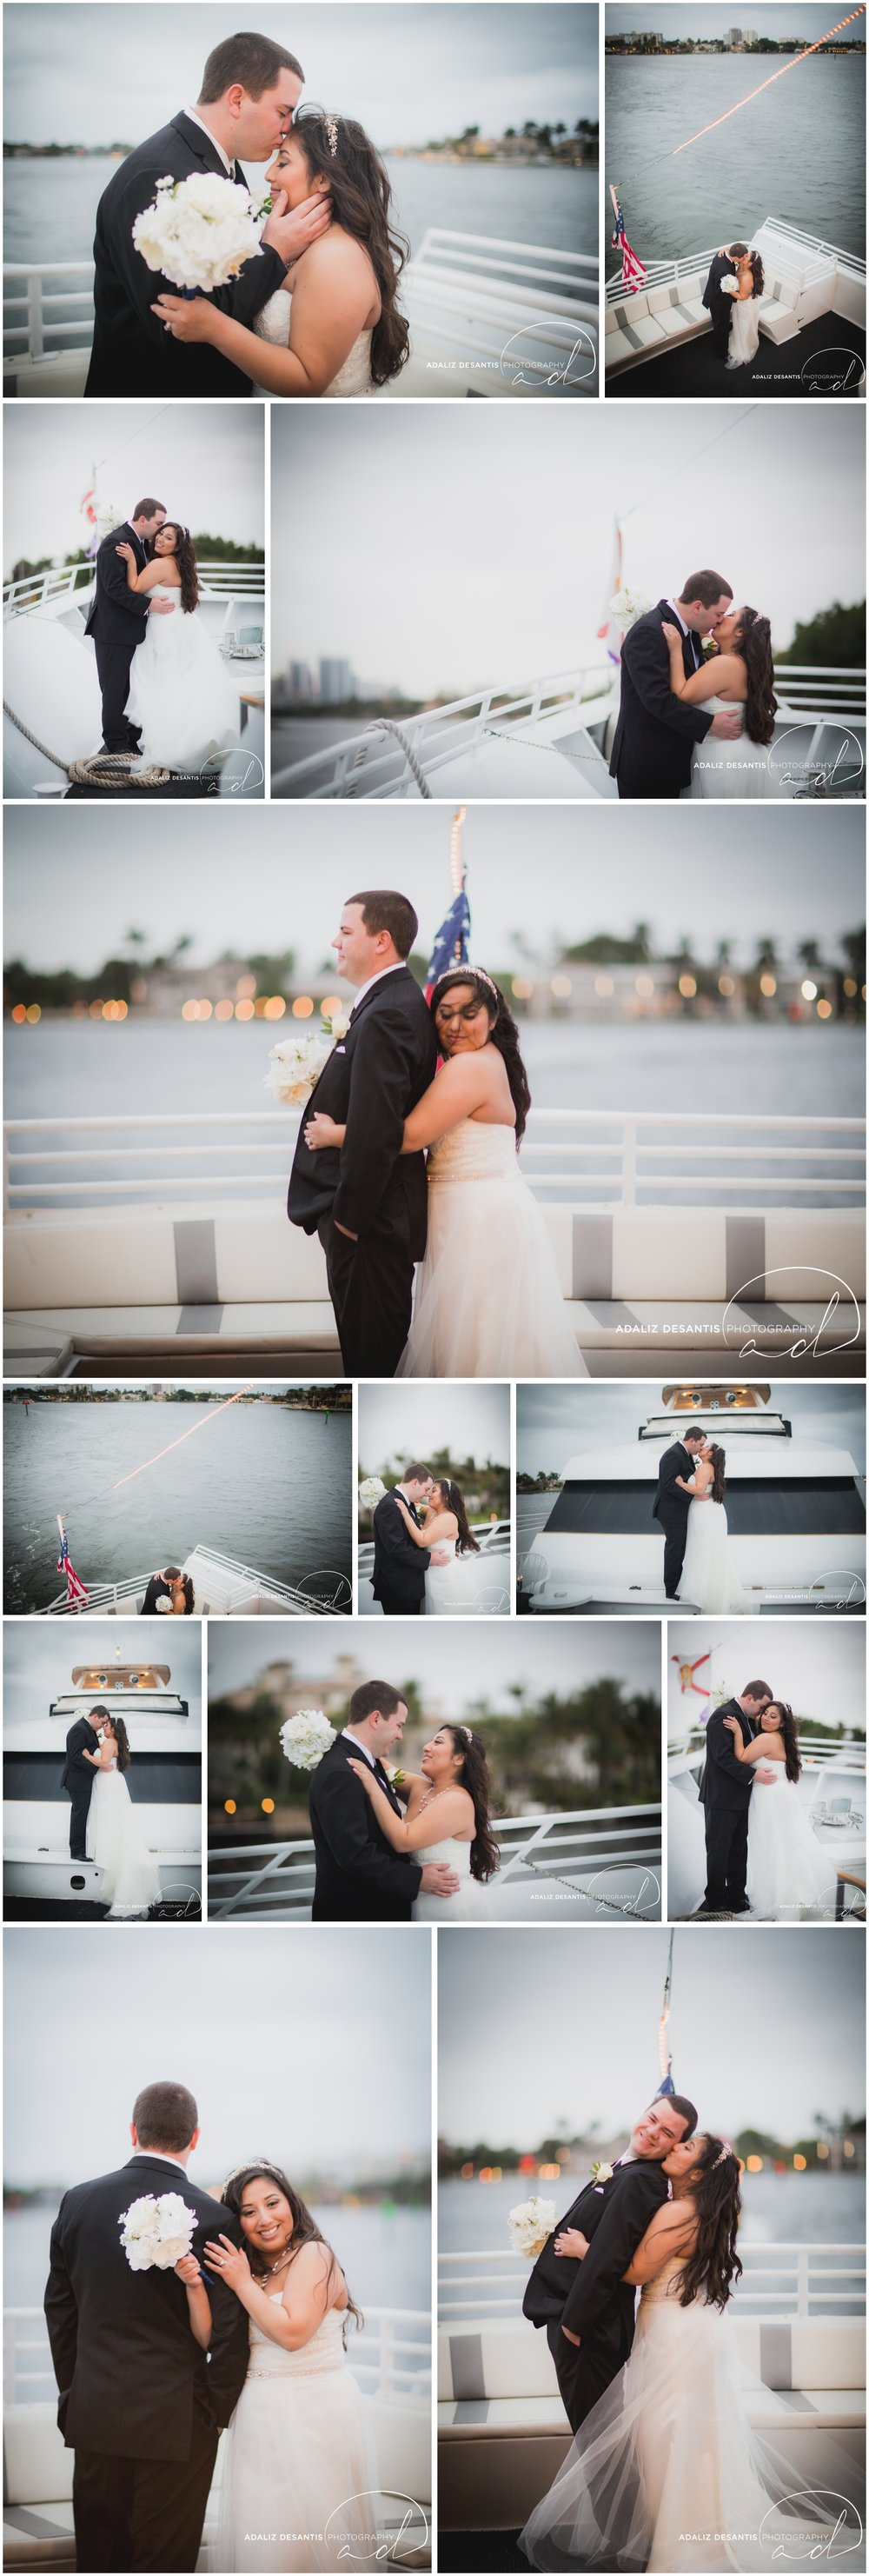 Taylor and amanda Indiana Fort Lauderdale Sun Dream yacht charter wedding 14